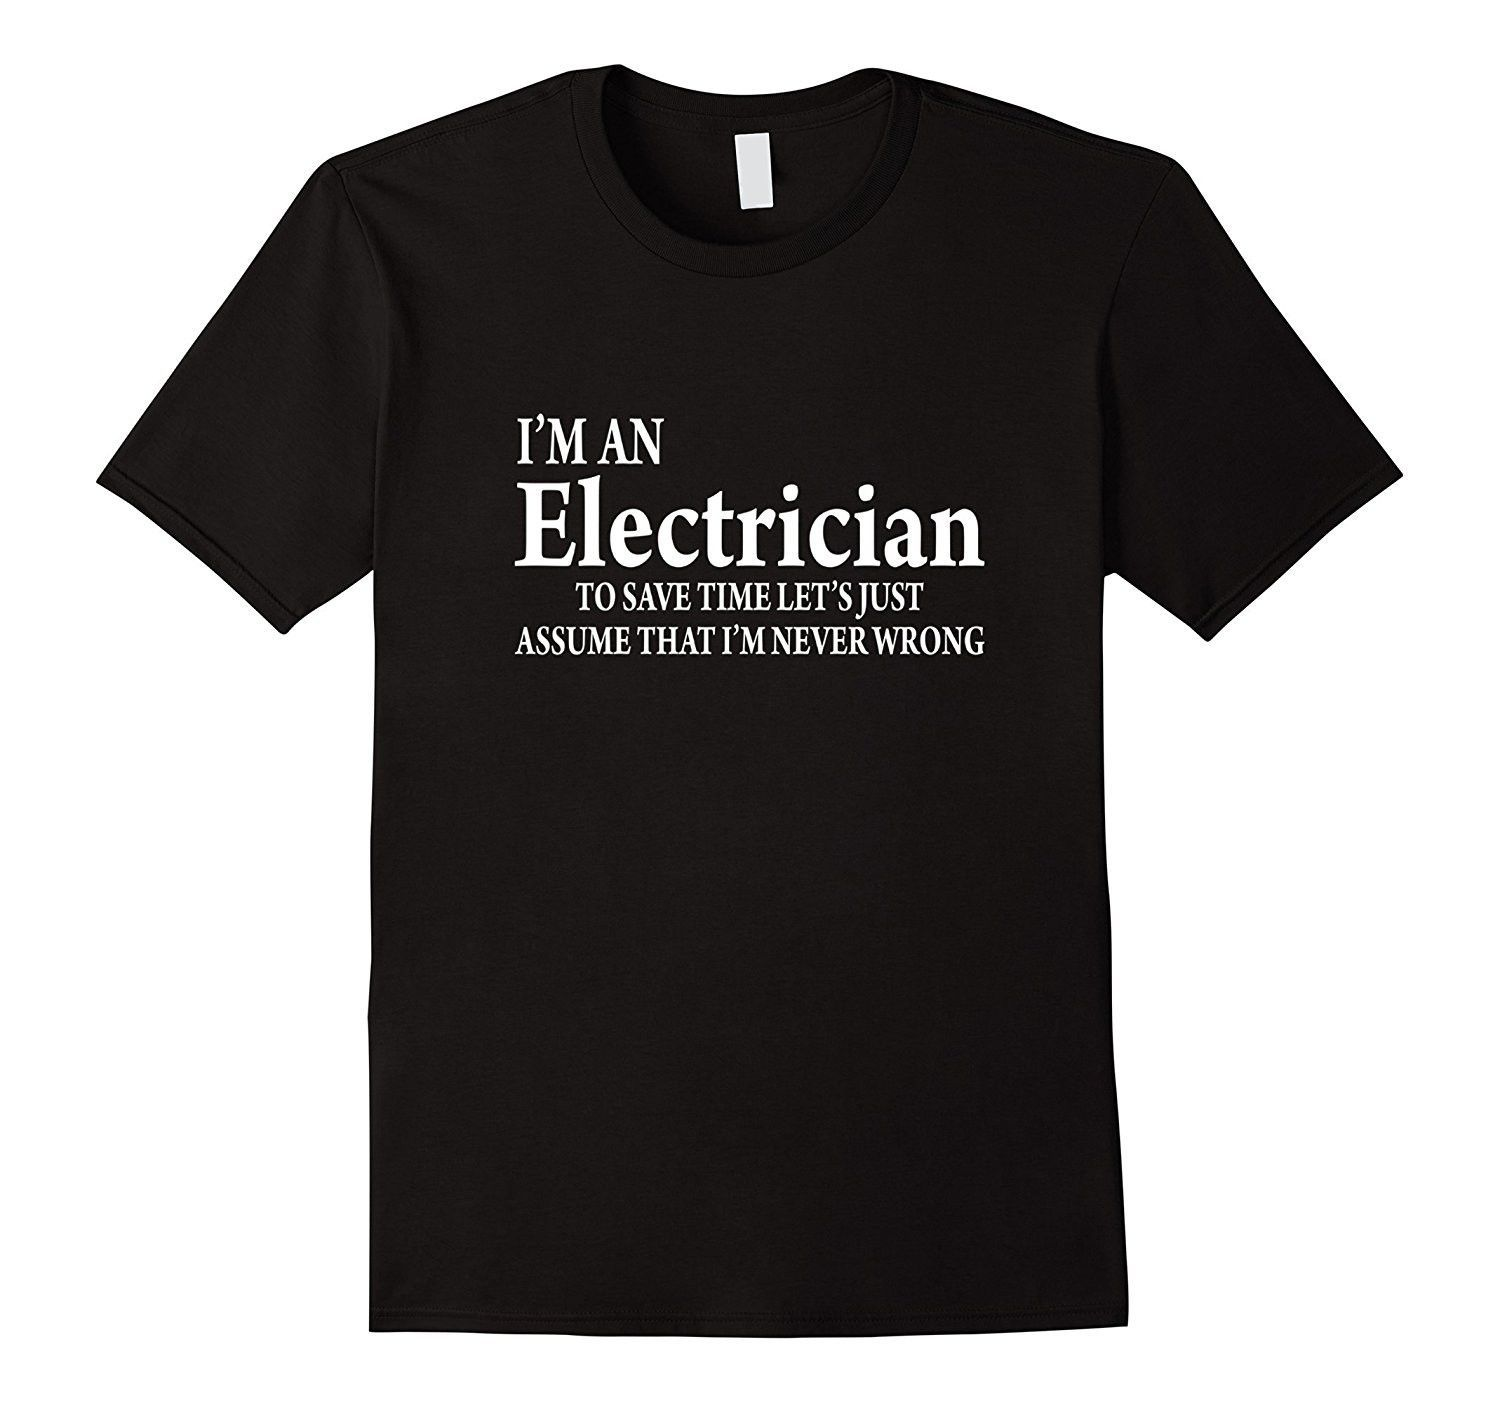 Electrician Quotes Funny Electrician Quotes Tshirt Electrician Job Title Gift .